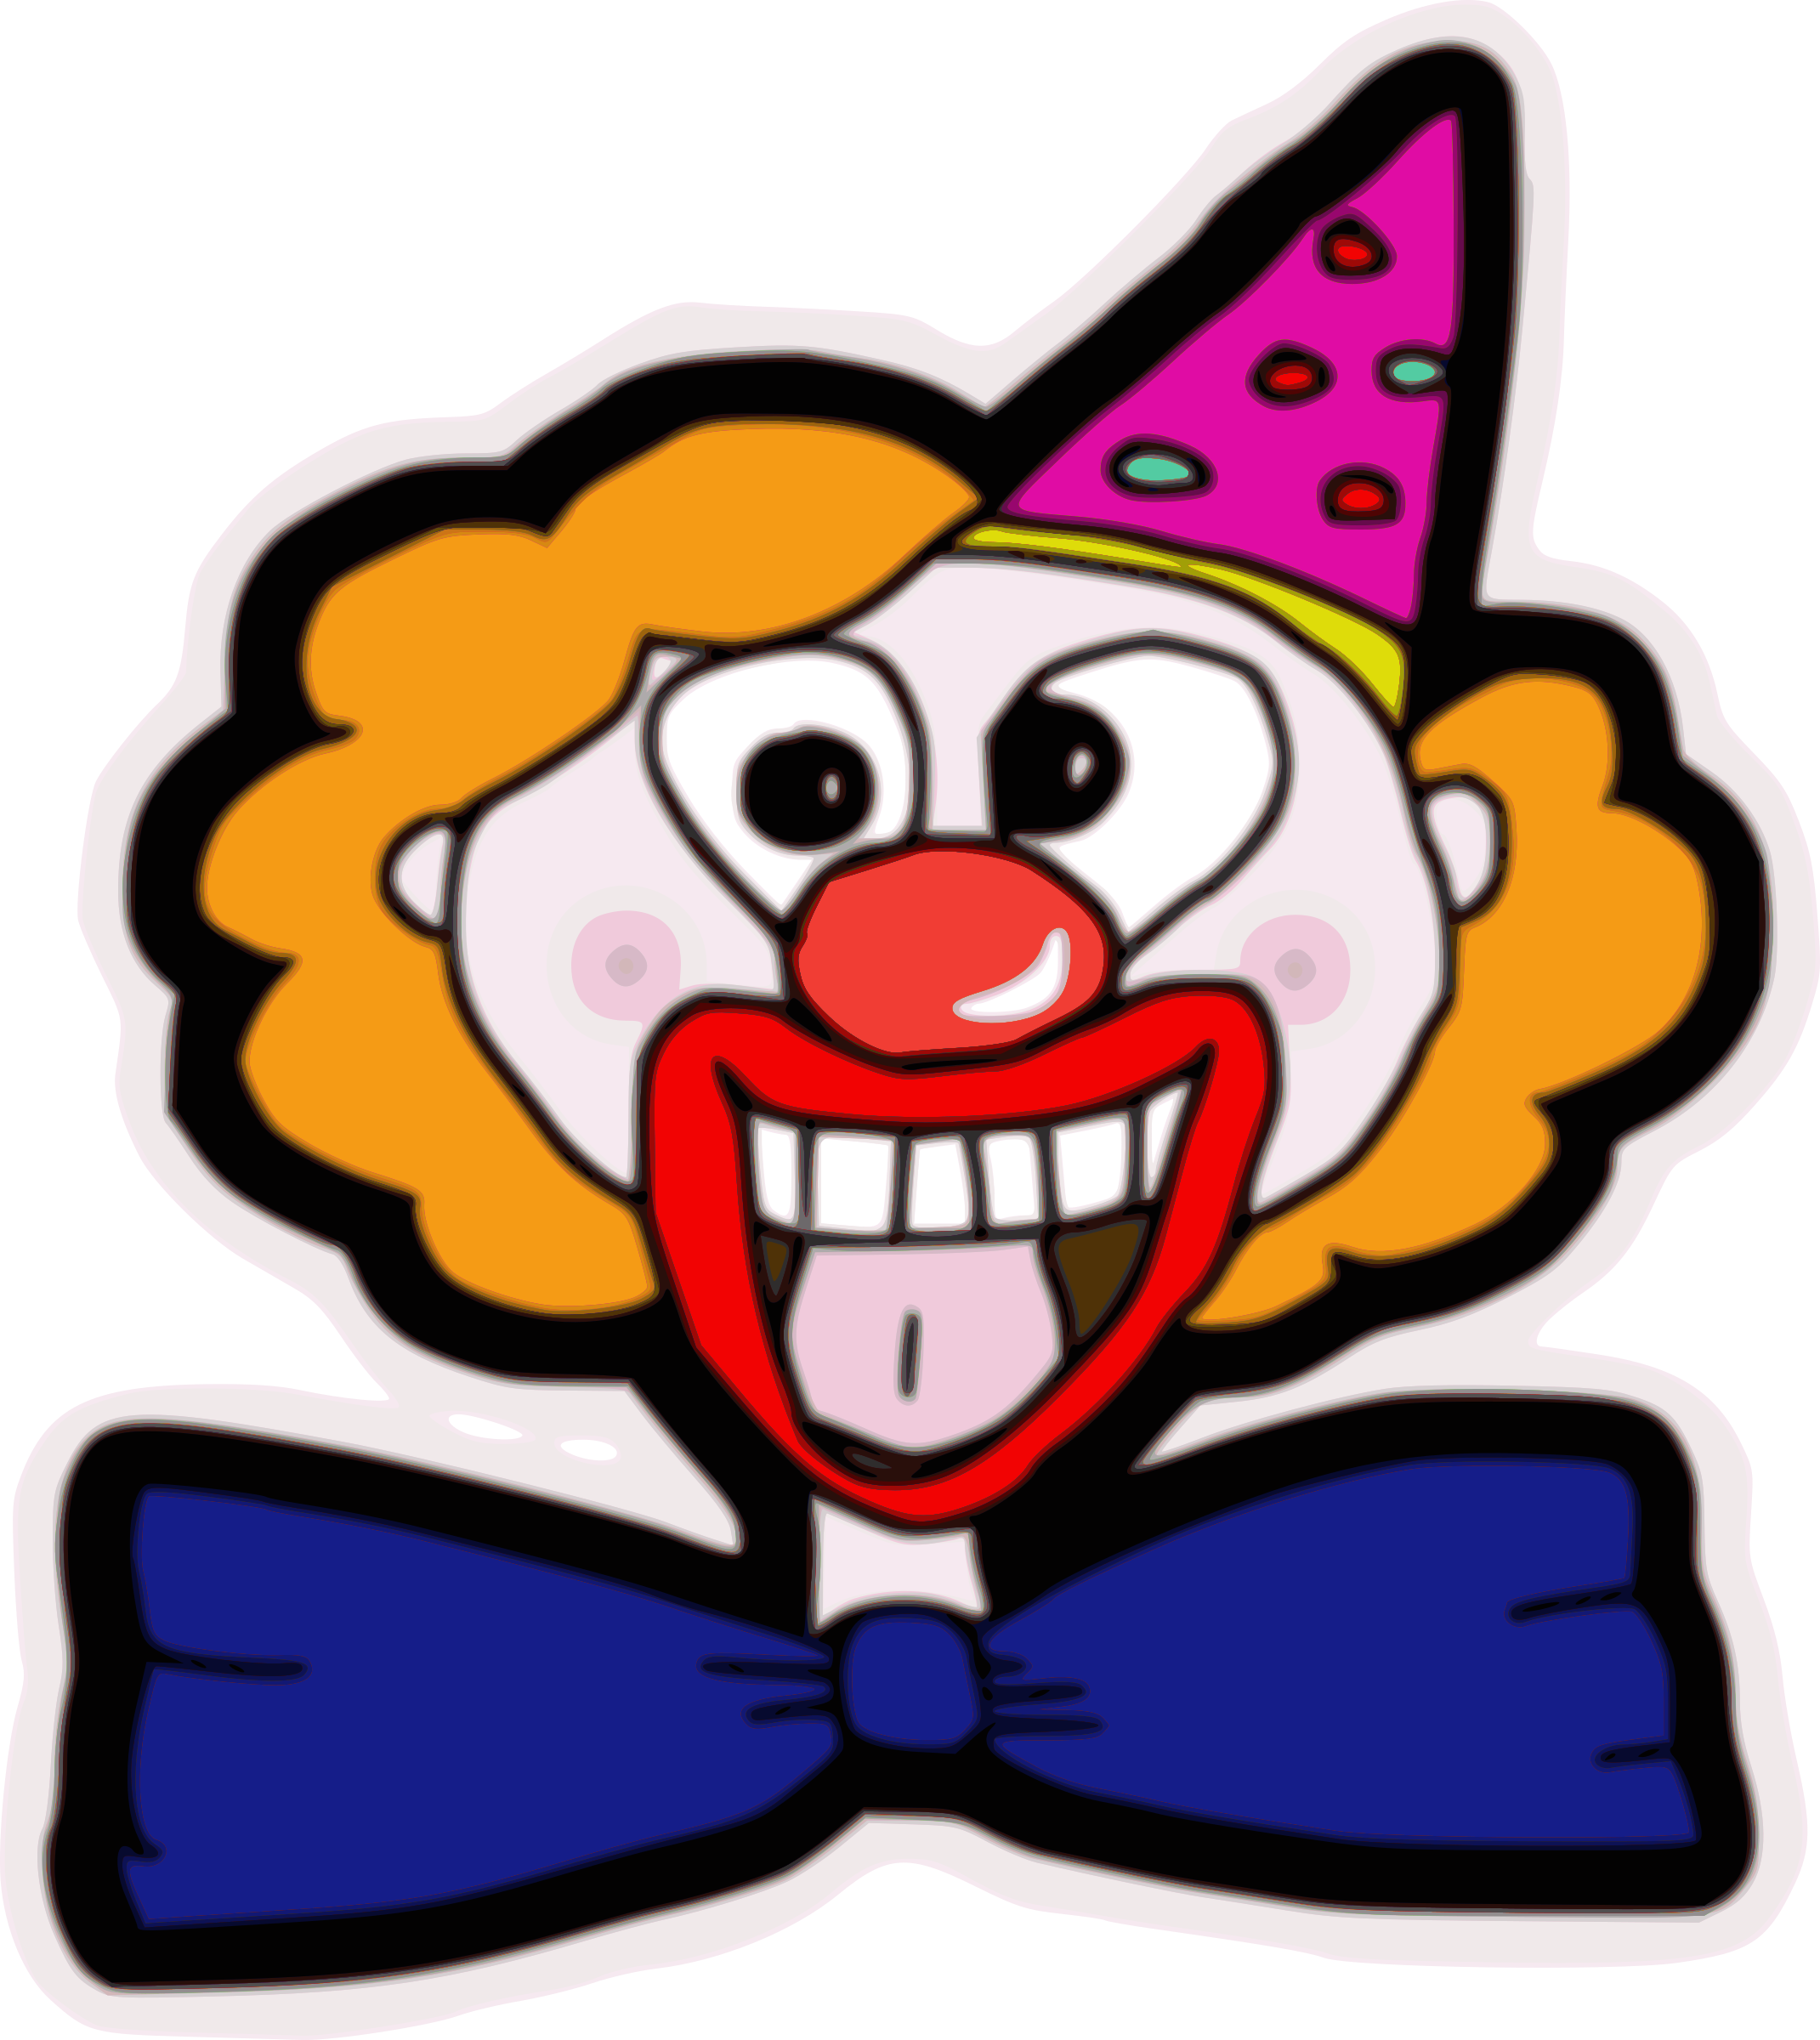 Clown Face by ksly4ever